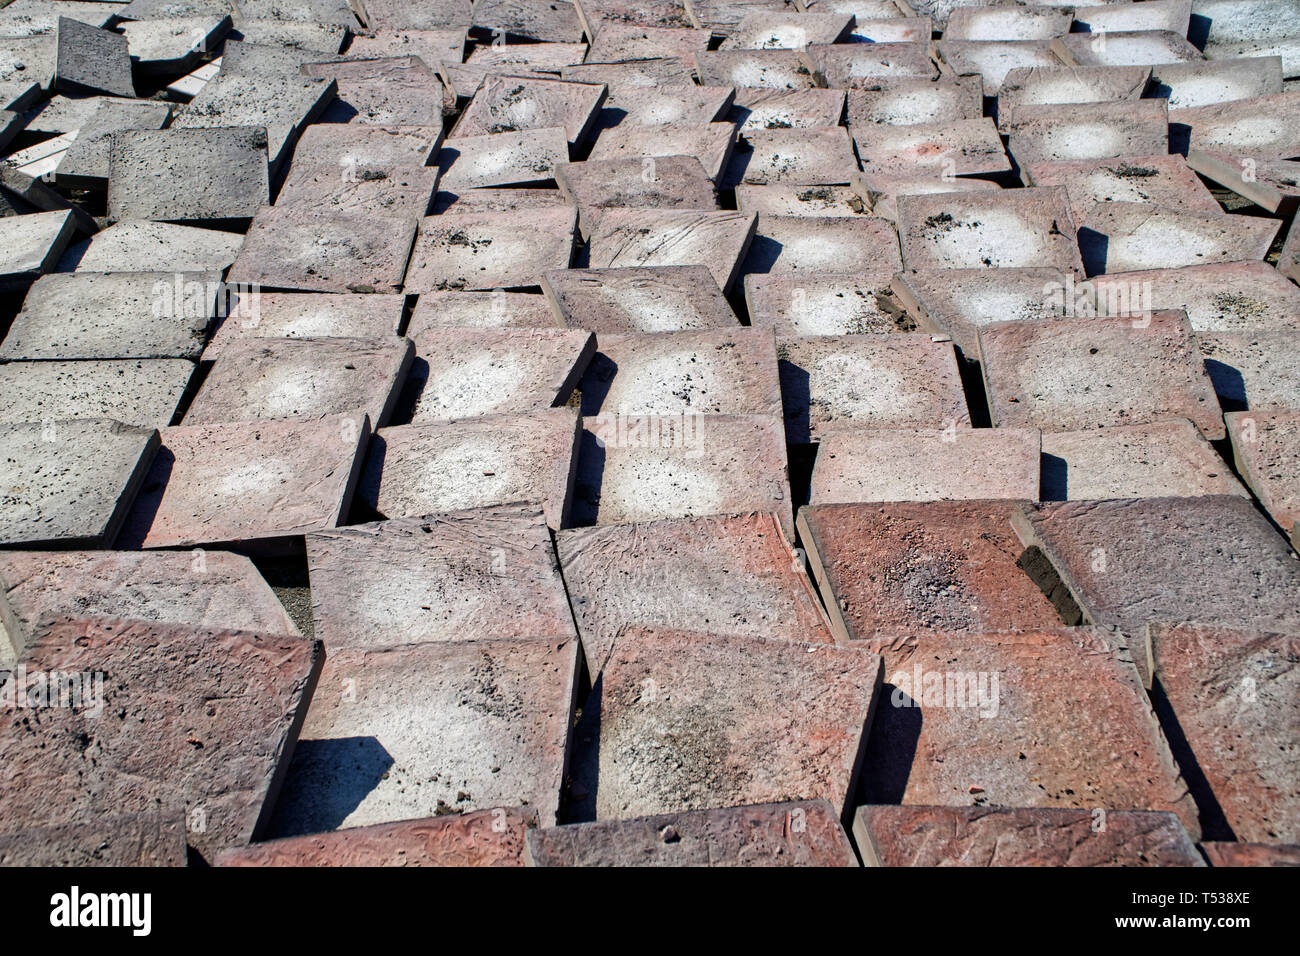 Old worn pavement tiles after dismantling from the streets of the city. Urban economy. Chip - Stock Image